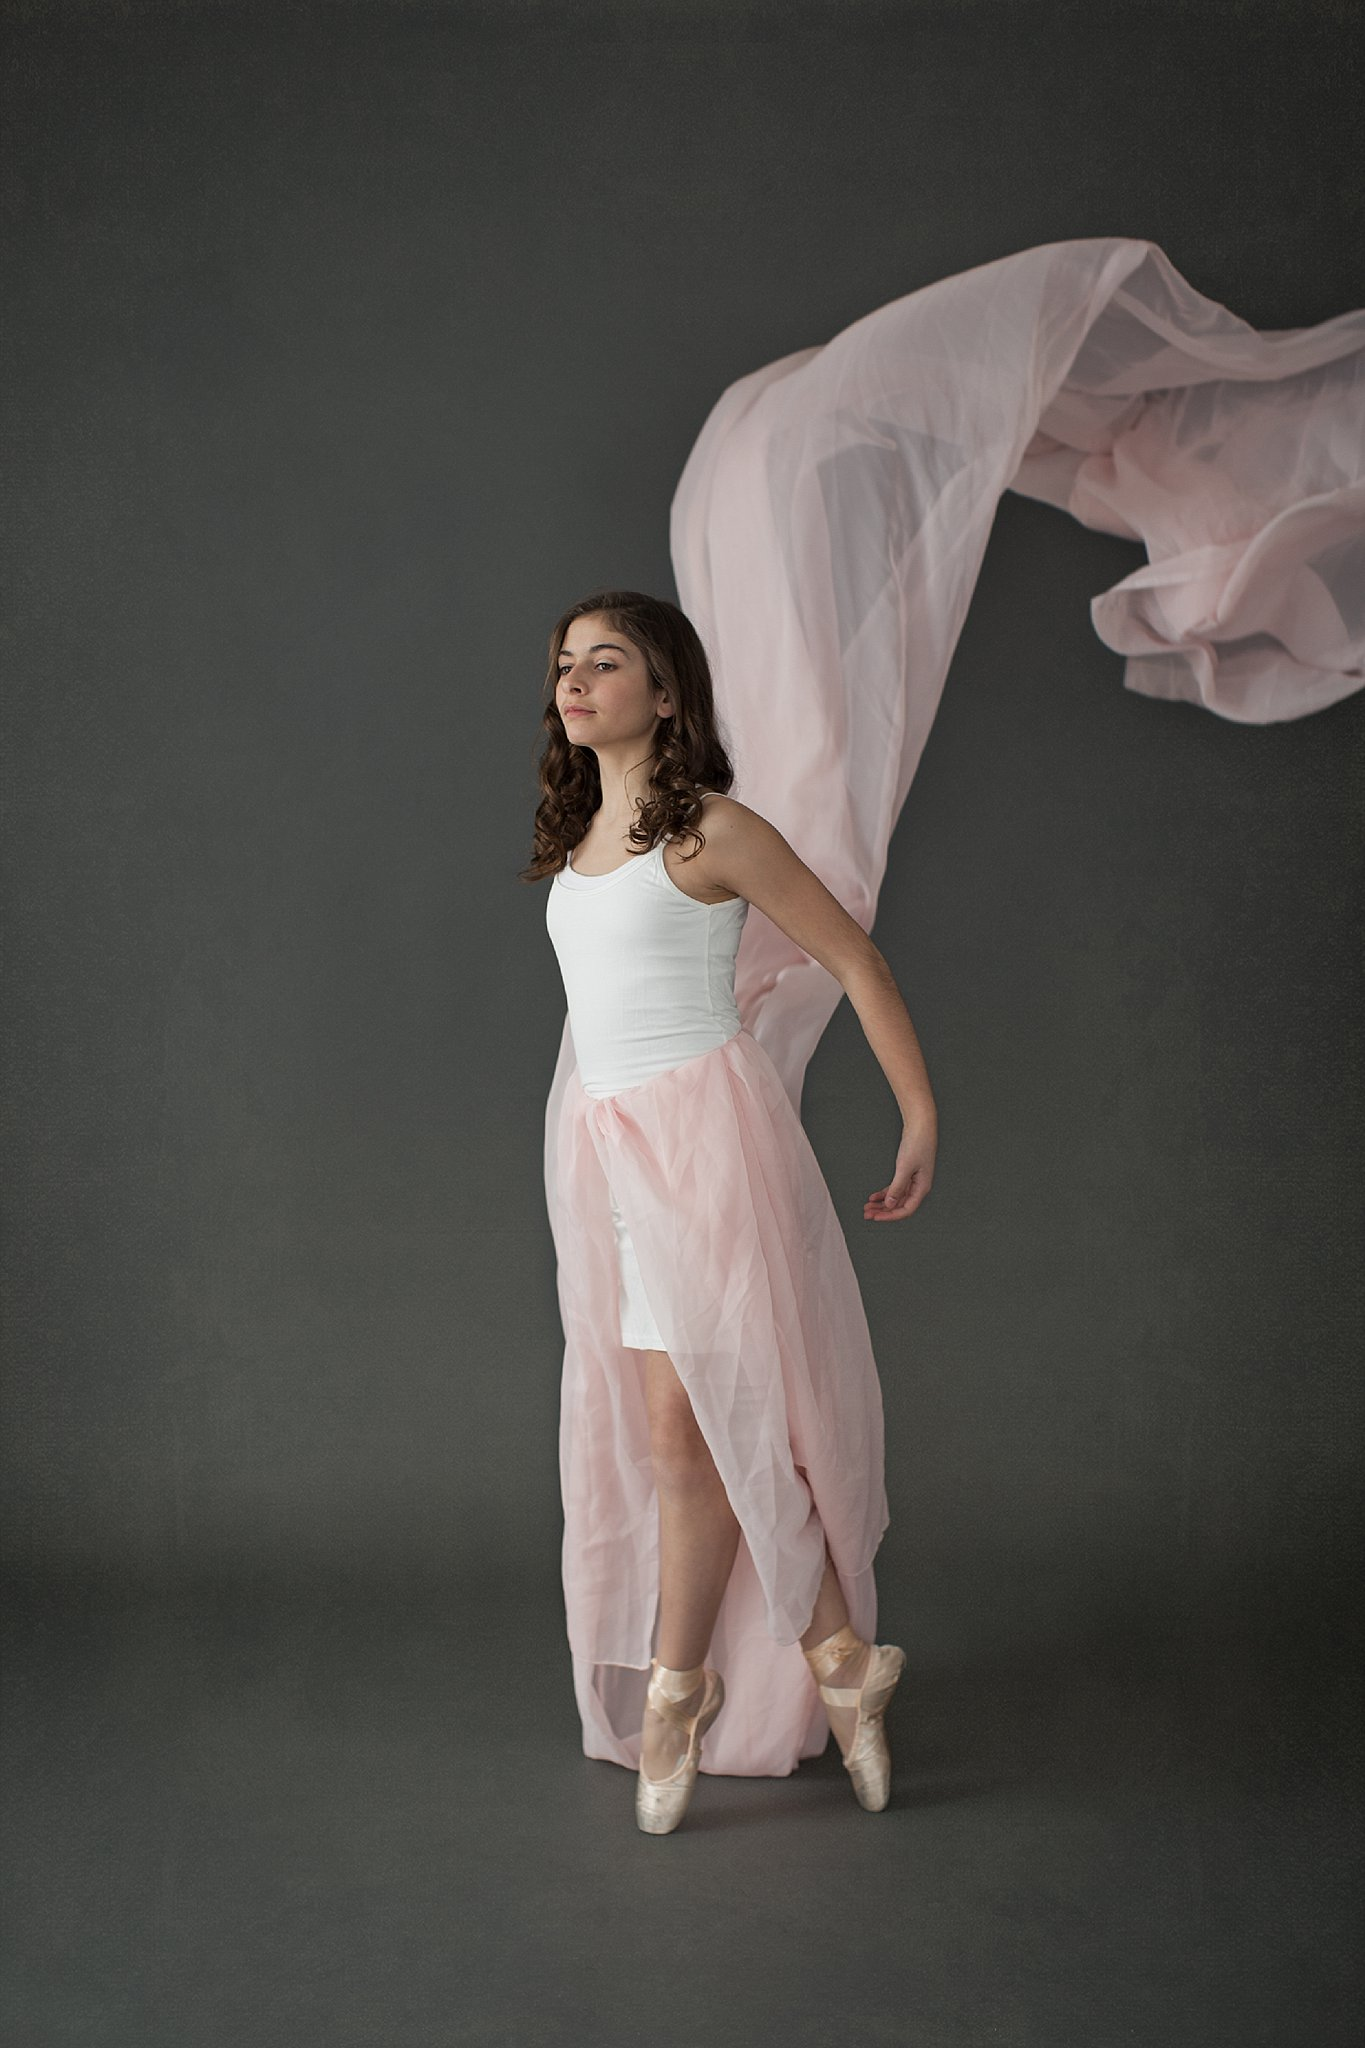 Portrait of a Young Dancer with Pink Skirt_0010.jpg